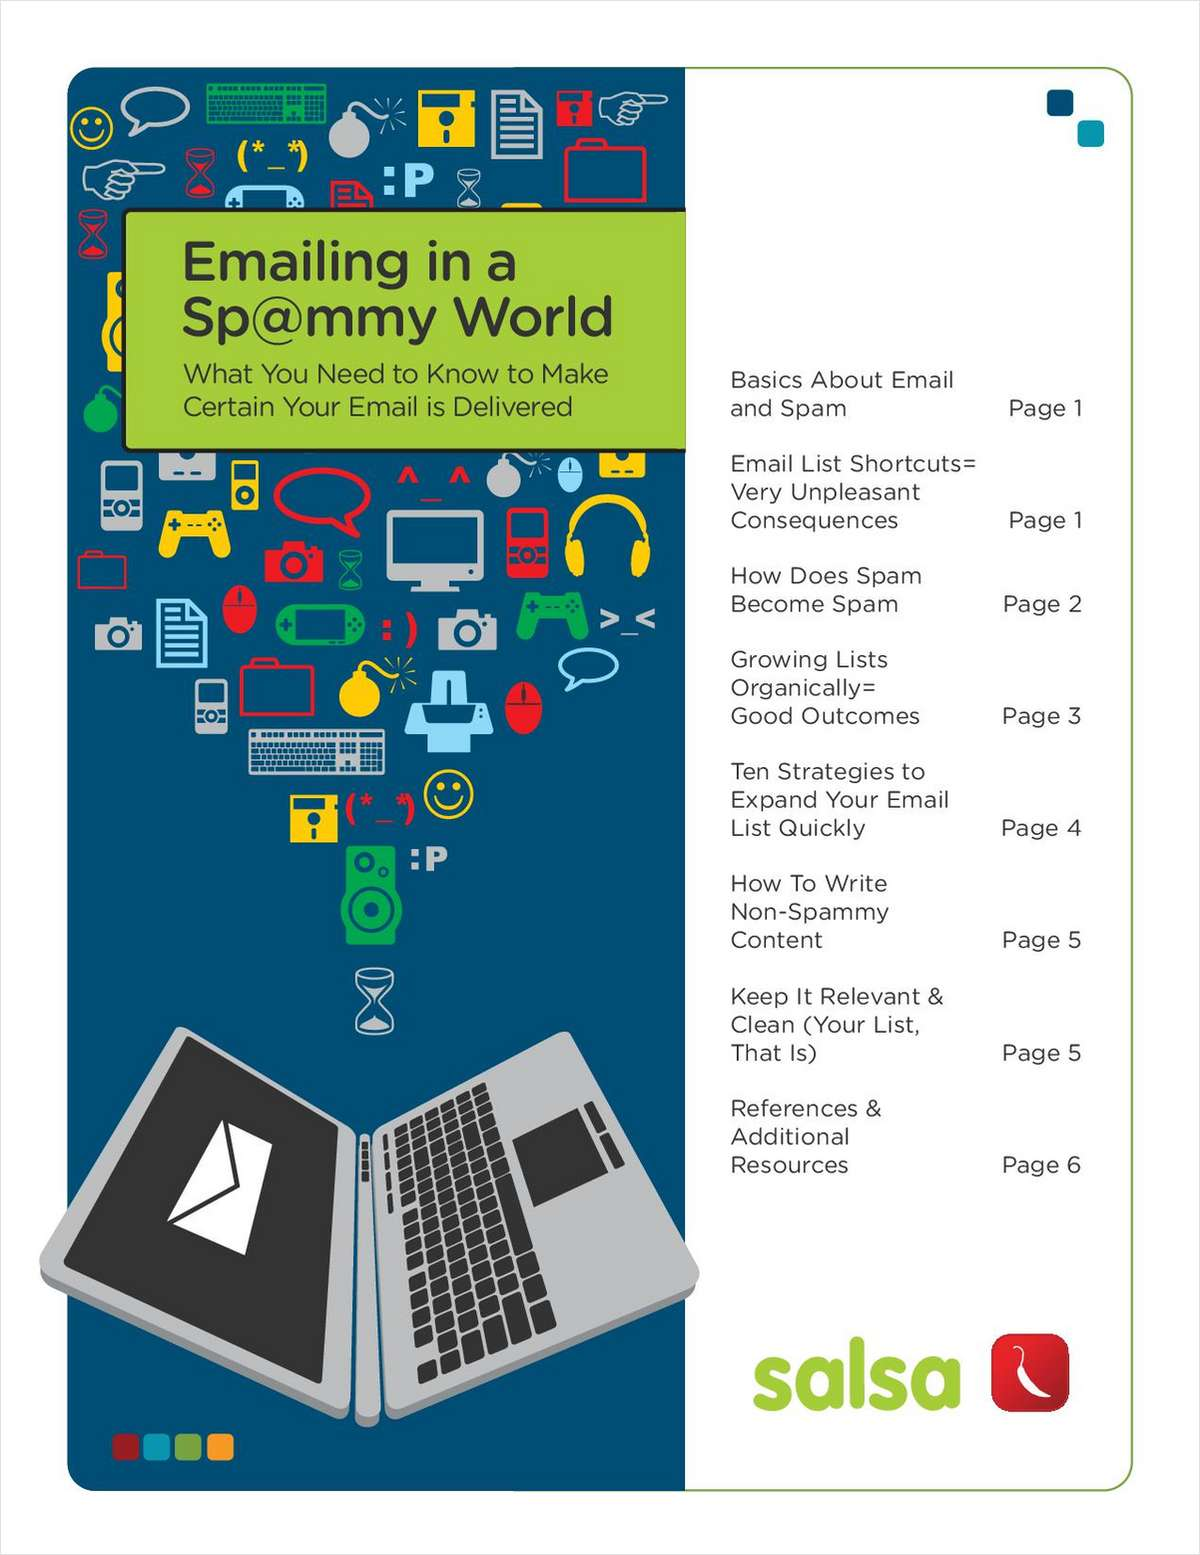 Emailing In A Spammy World: What You Need to Know to Make Certain Your Email is Delivered